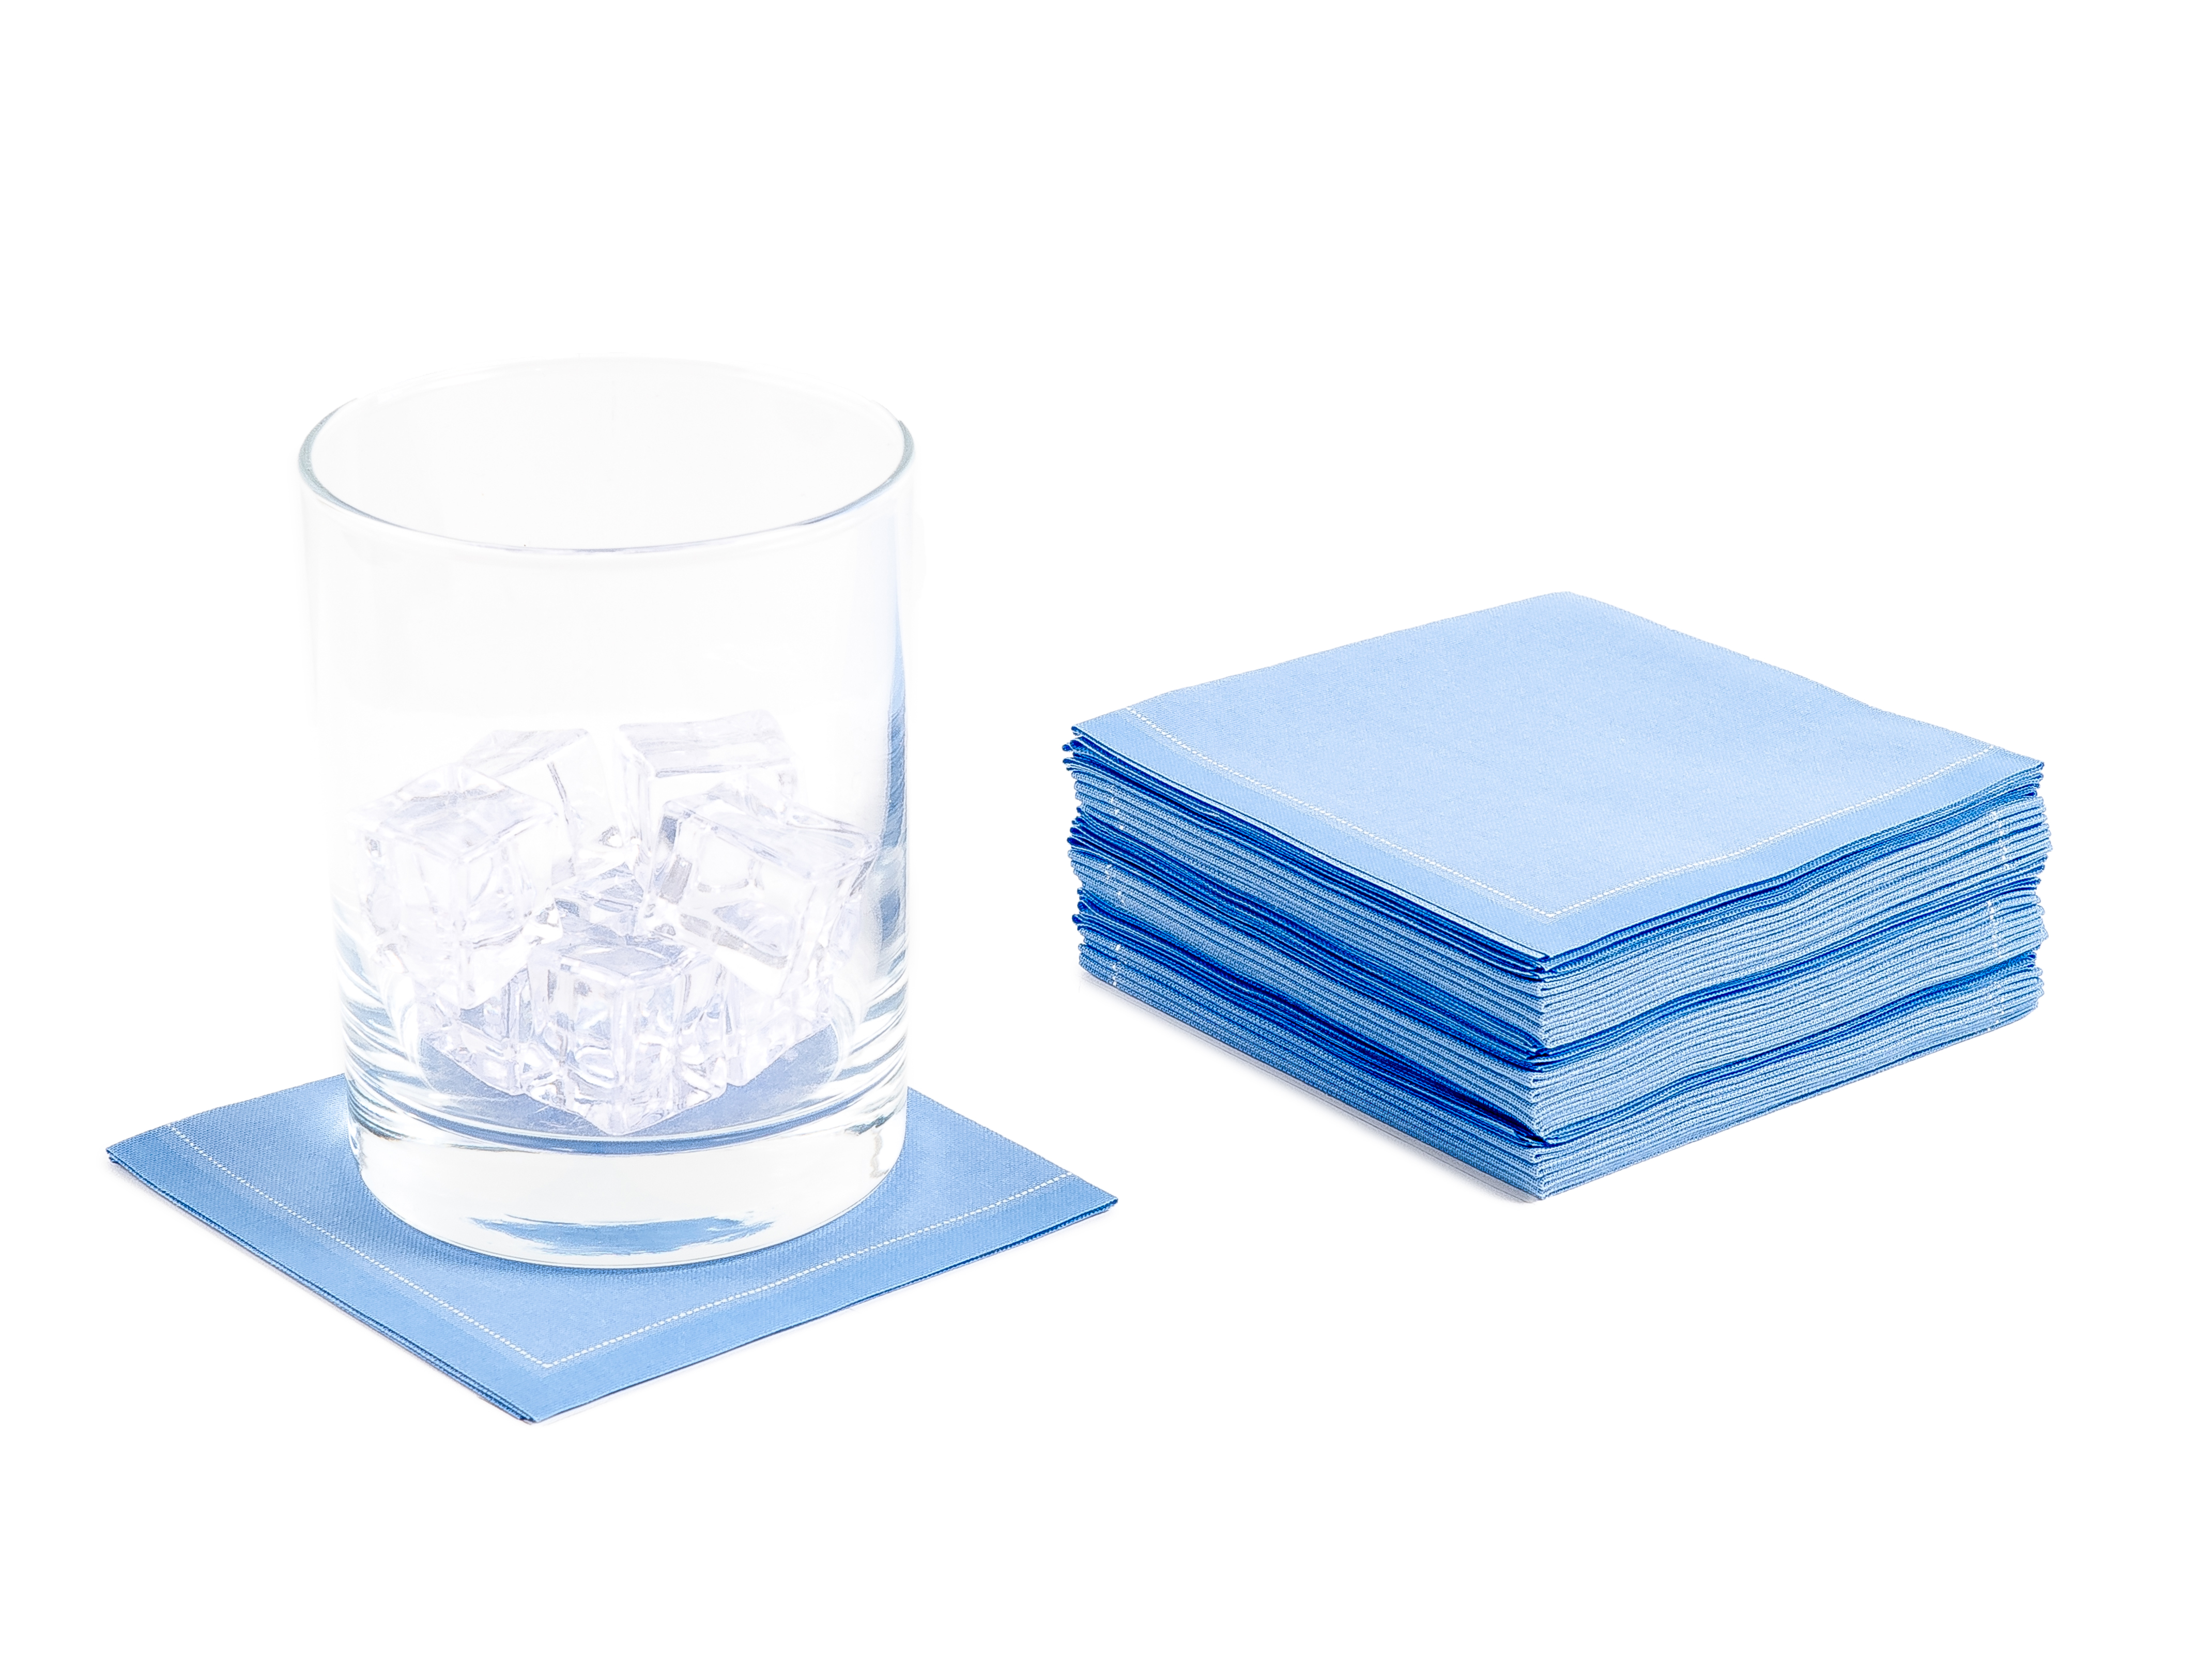 "Sea Blue Cotton 1/4 Fold Cocktail (140 GSM) - 8"" x 8"" (folded 4"" x 4"") - 600 units"